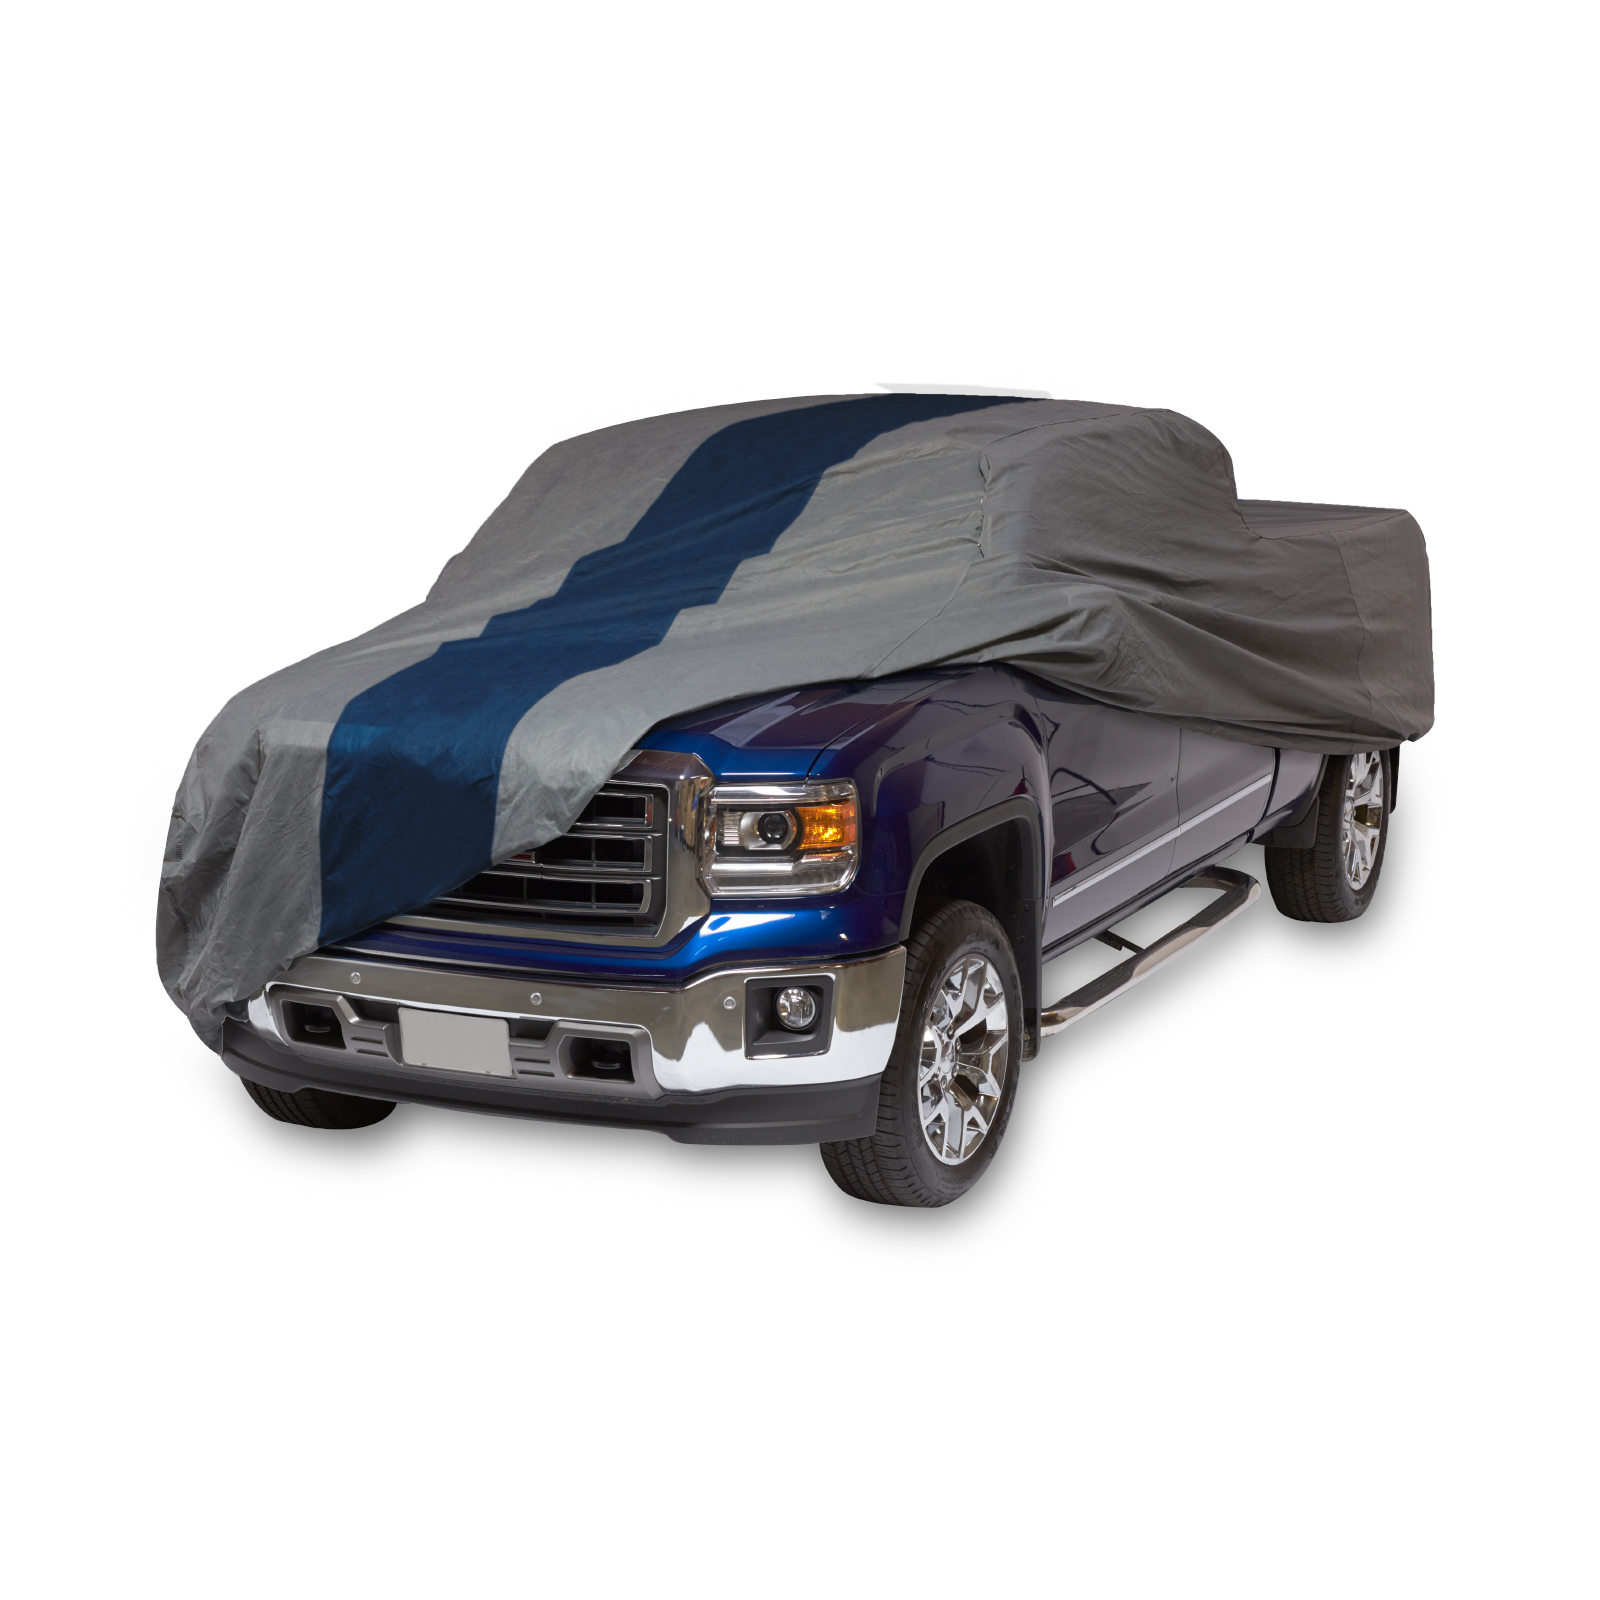 "Duck Covers 16'x5"" Double Defender Pickup Truck Automotive Cover Gray/Blue"